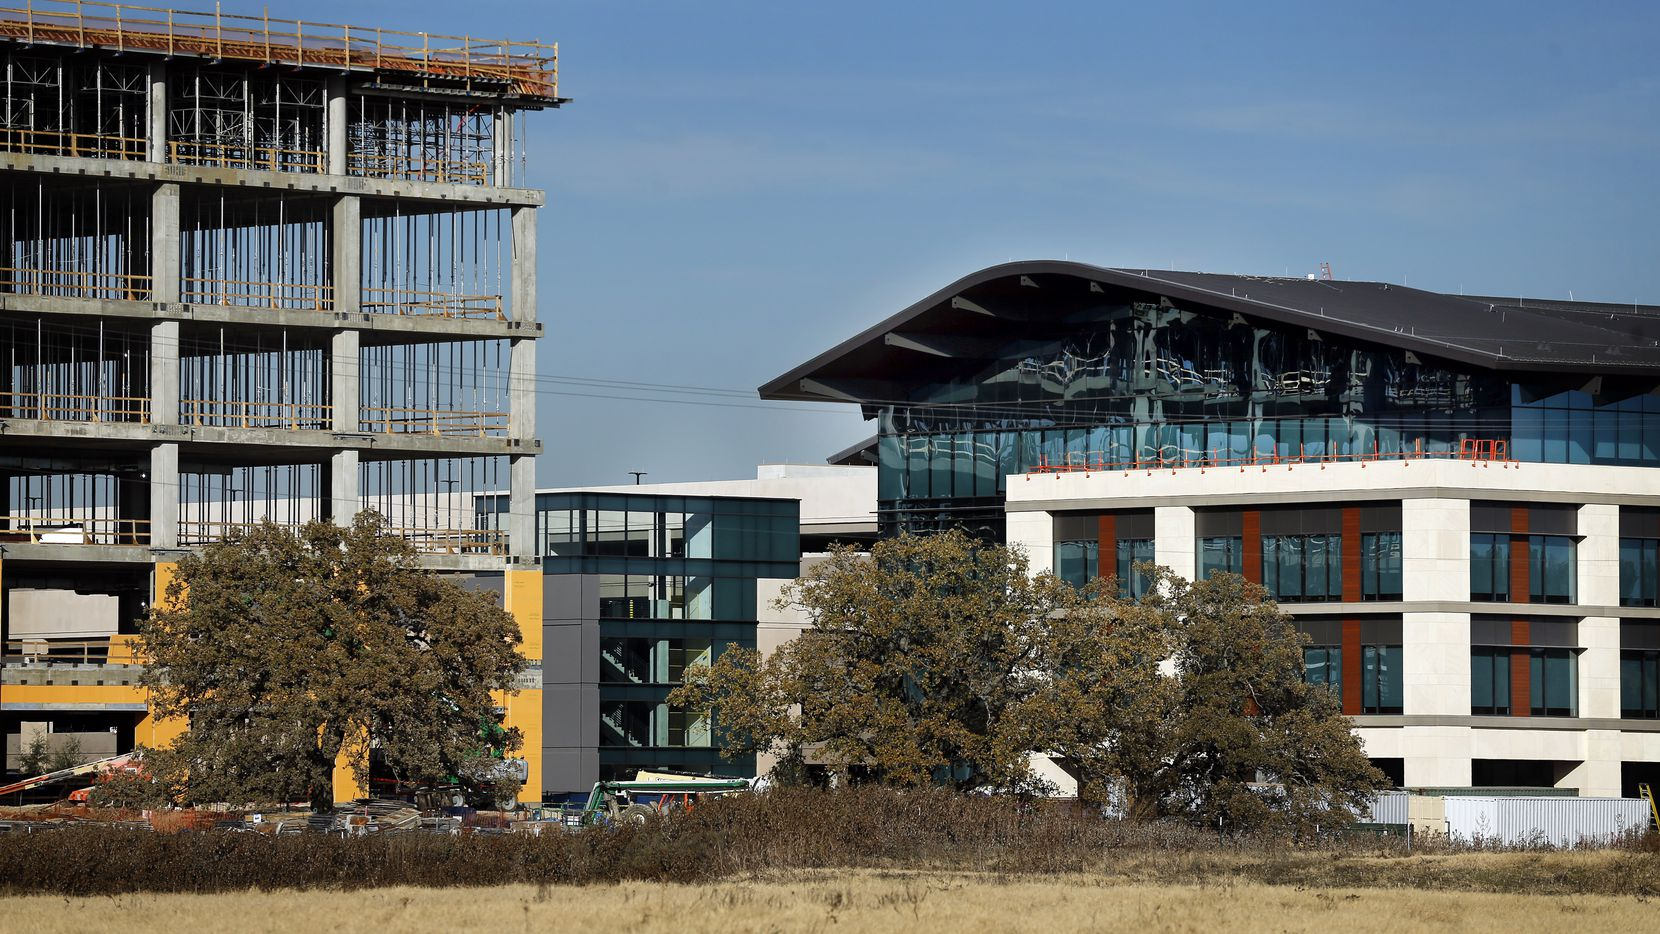 Charles Schwab will move its corporate headquarters from San Francisco to a new campus in Westlake, currently under construction. Finance and insurance jobs have been growing rapidly in North Texas, the state's business and financial services hub.